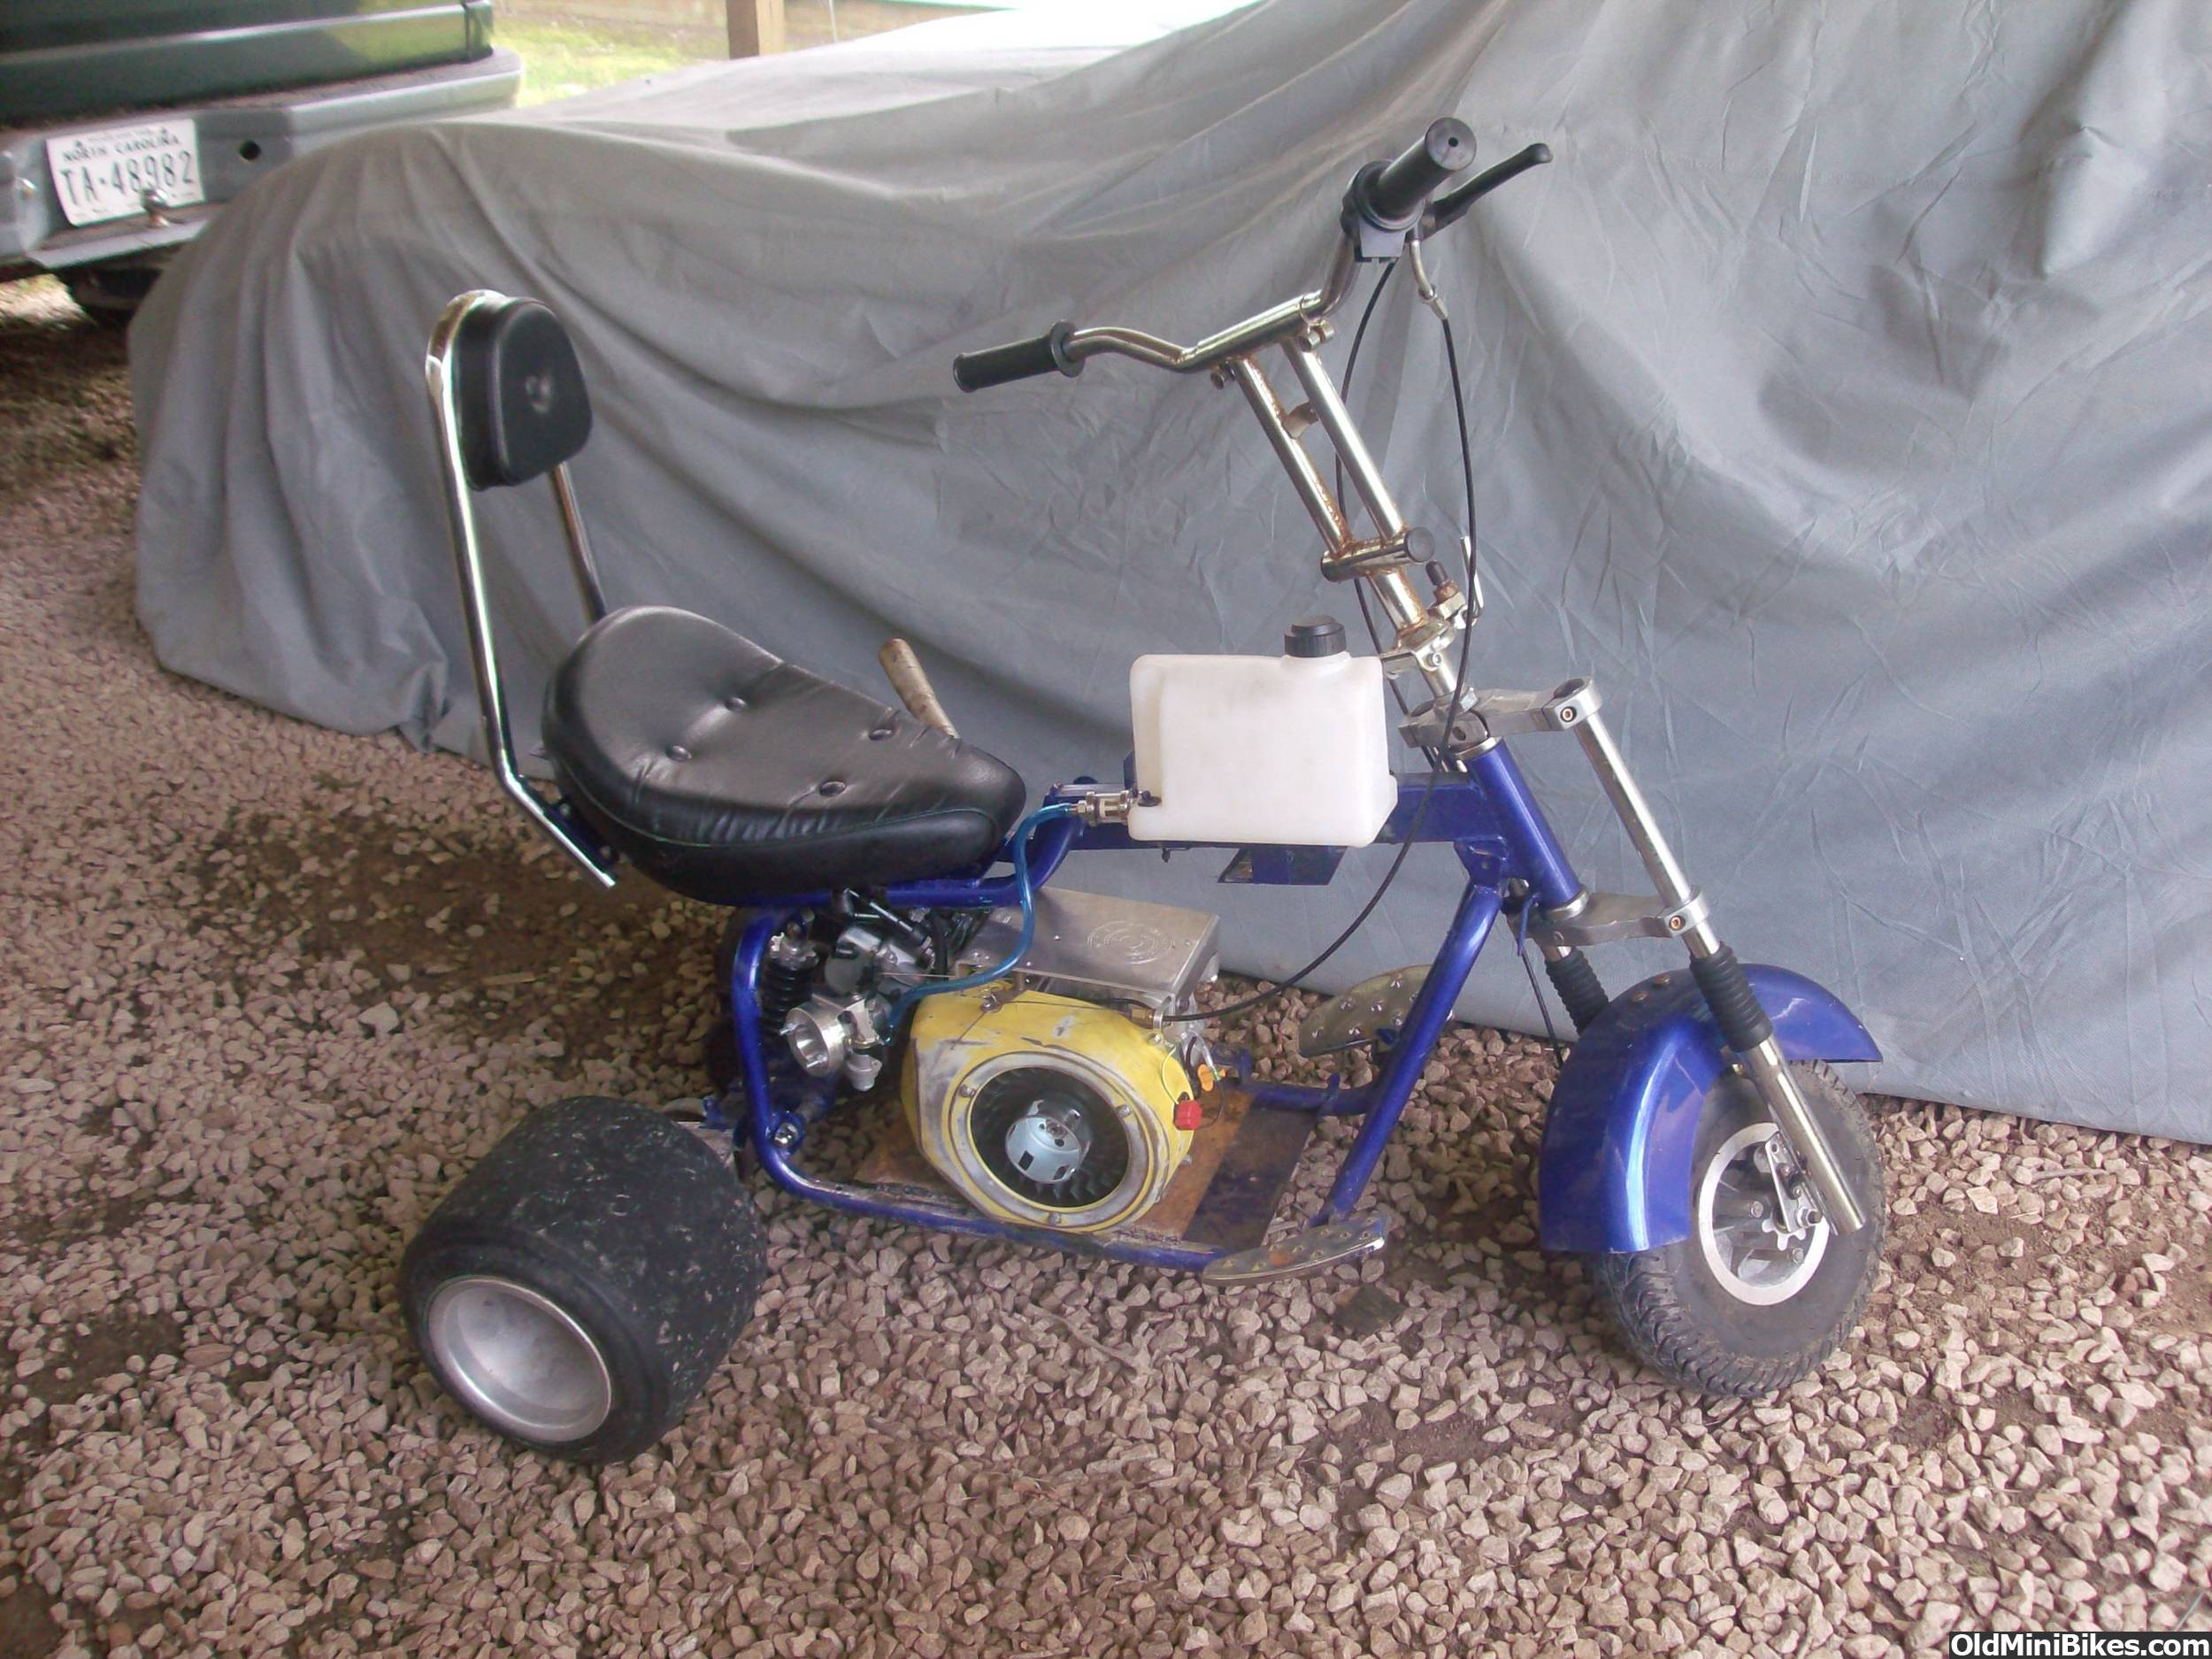 3 Wheel Mini Bike : Drag wheeler mini bike